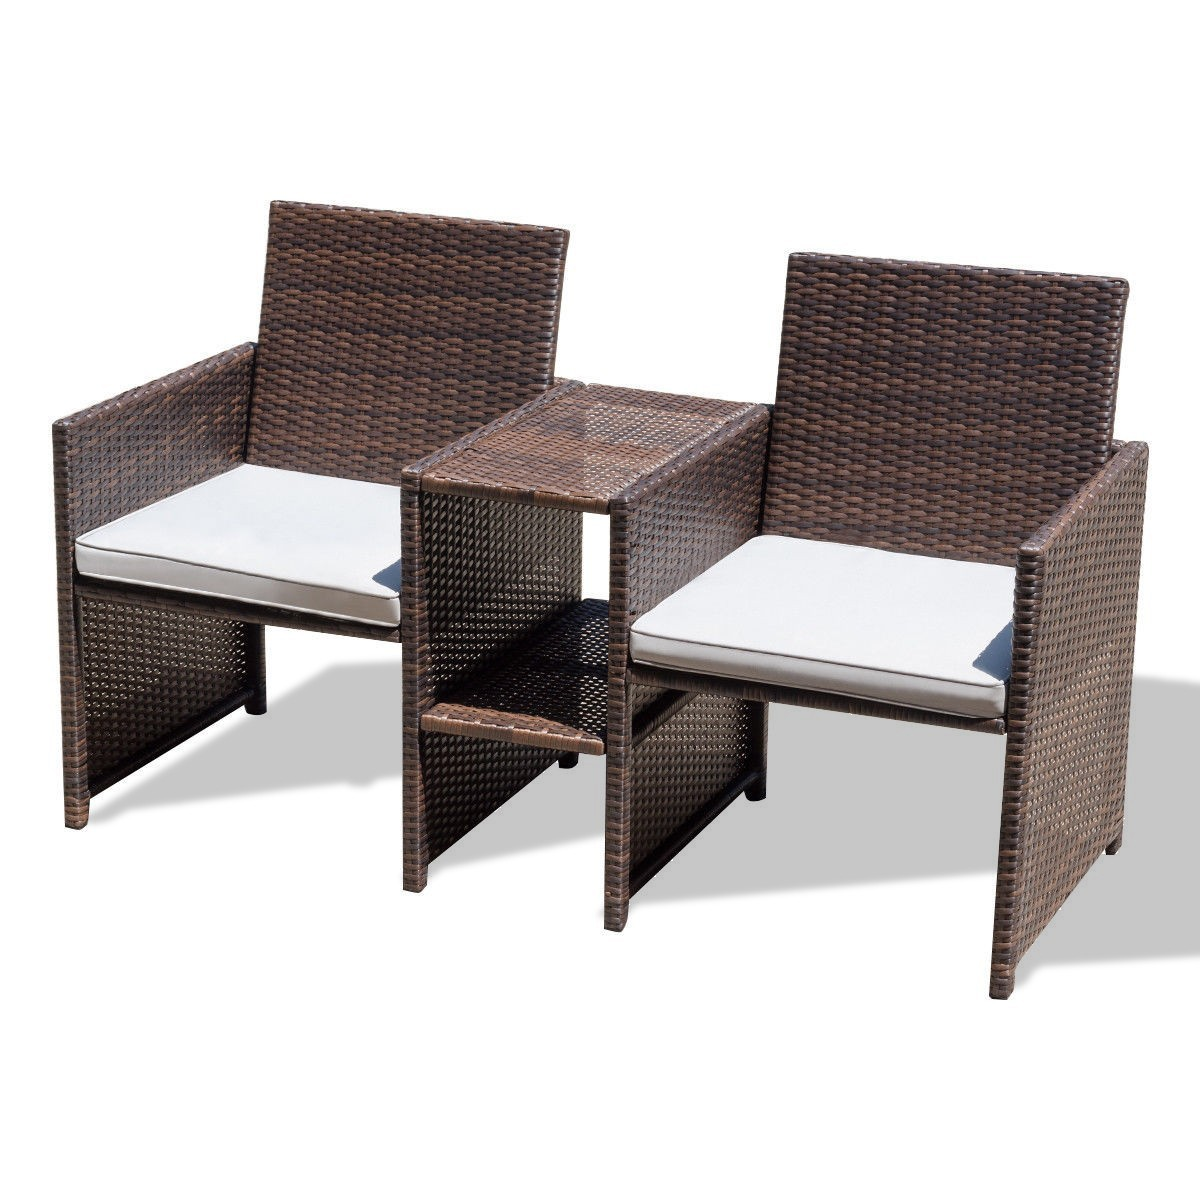 Outdoor Rattan Sofa Chair Furniture Set with Cushion by